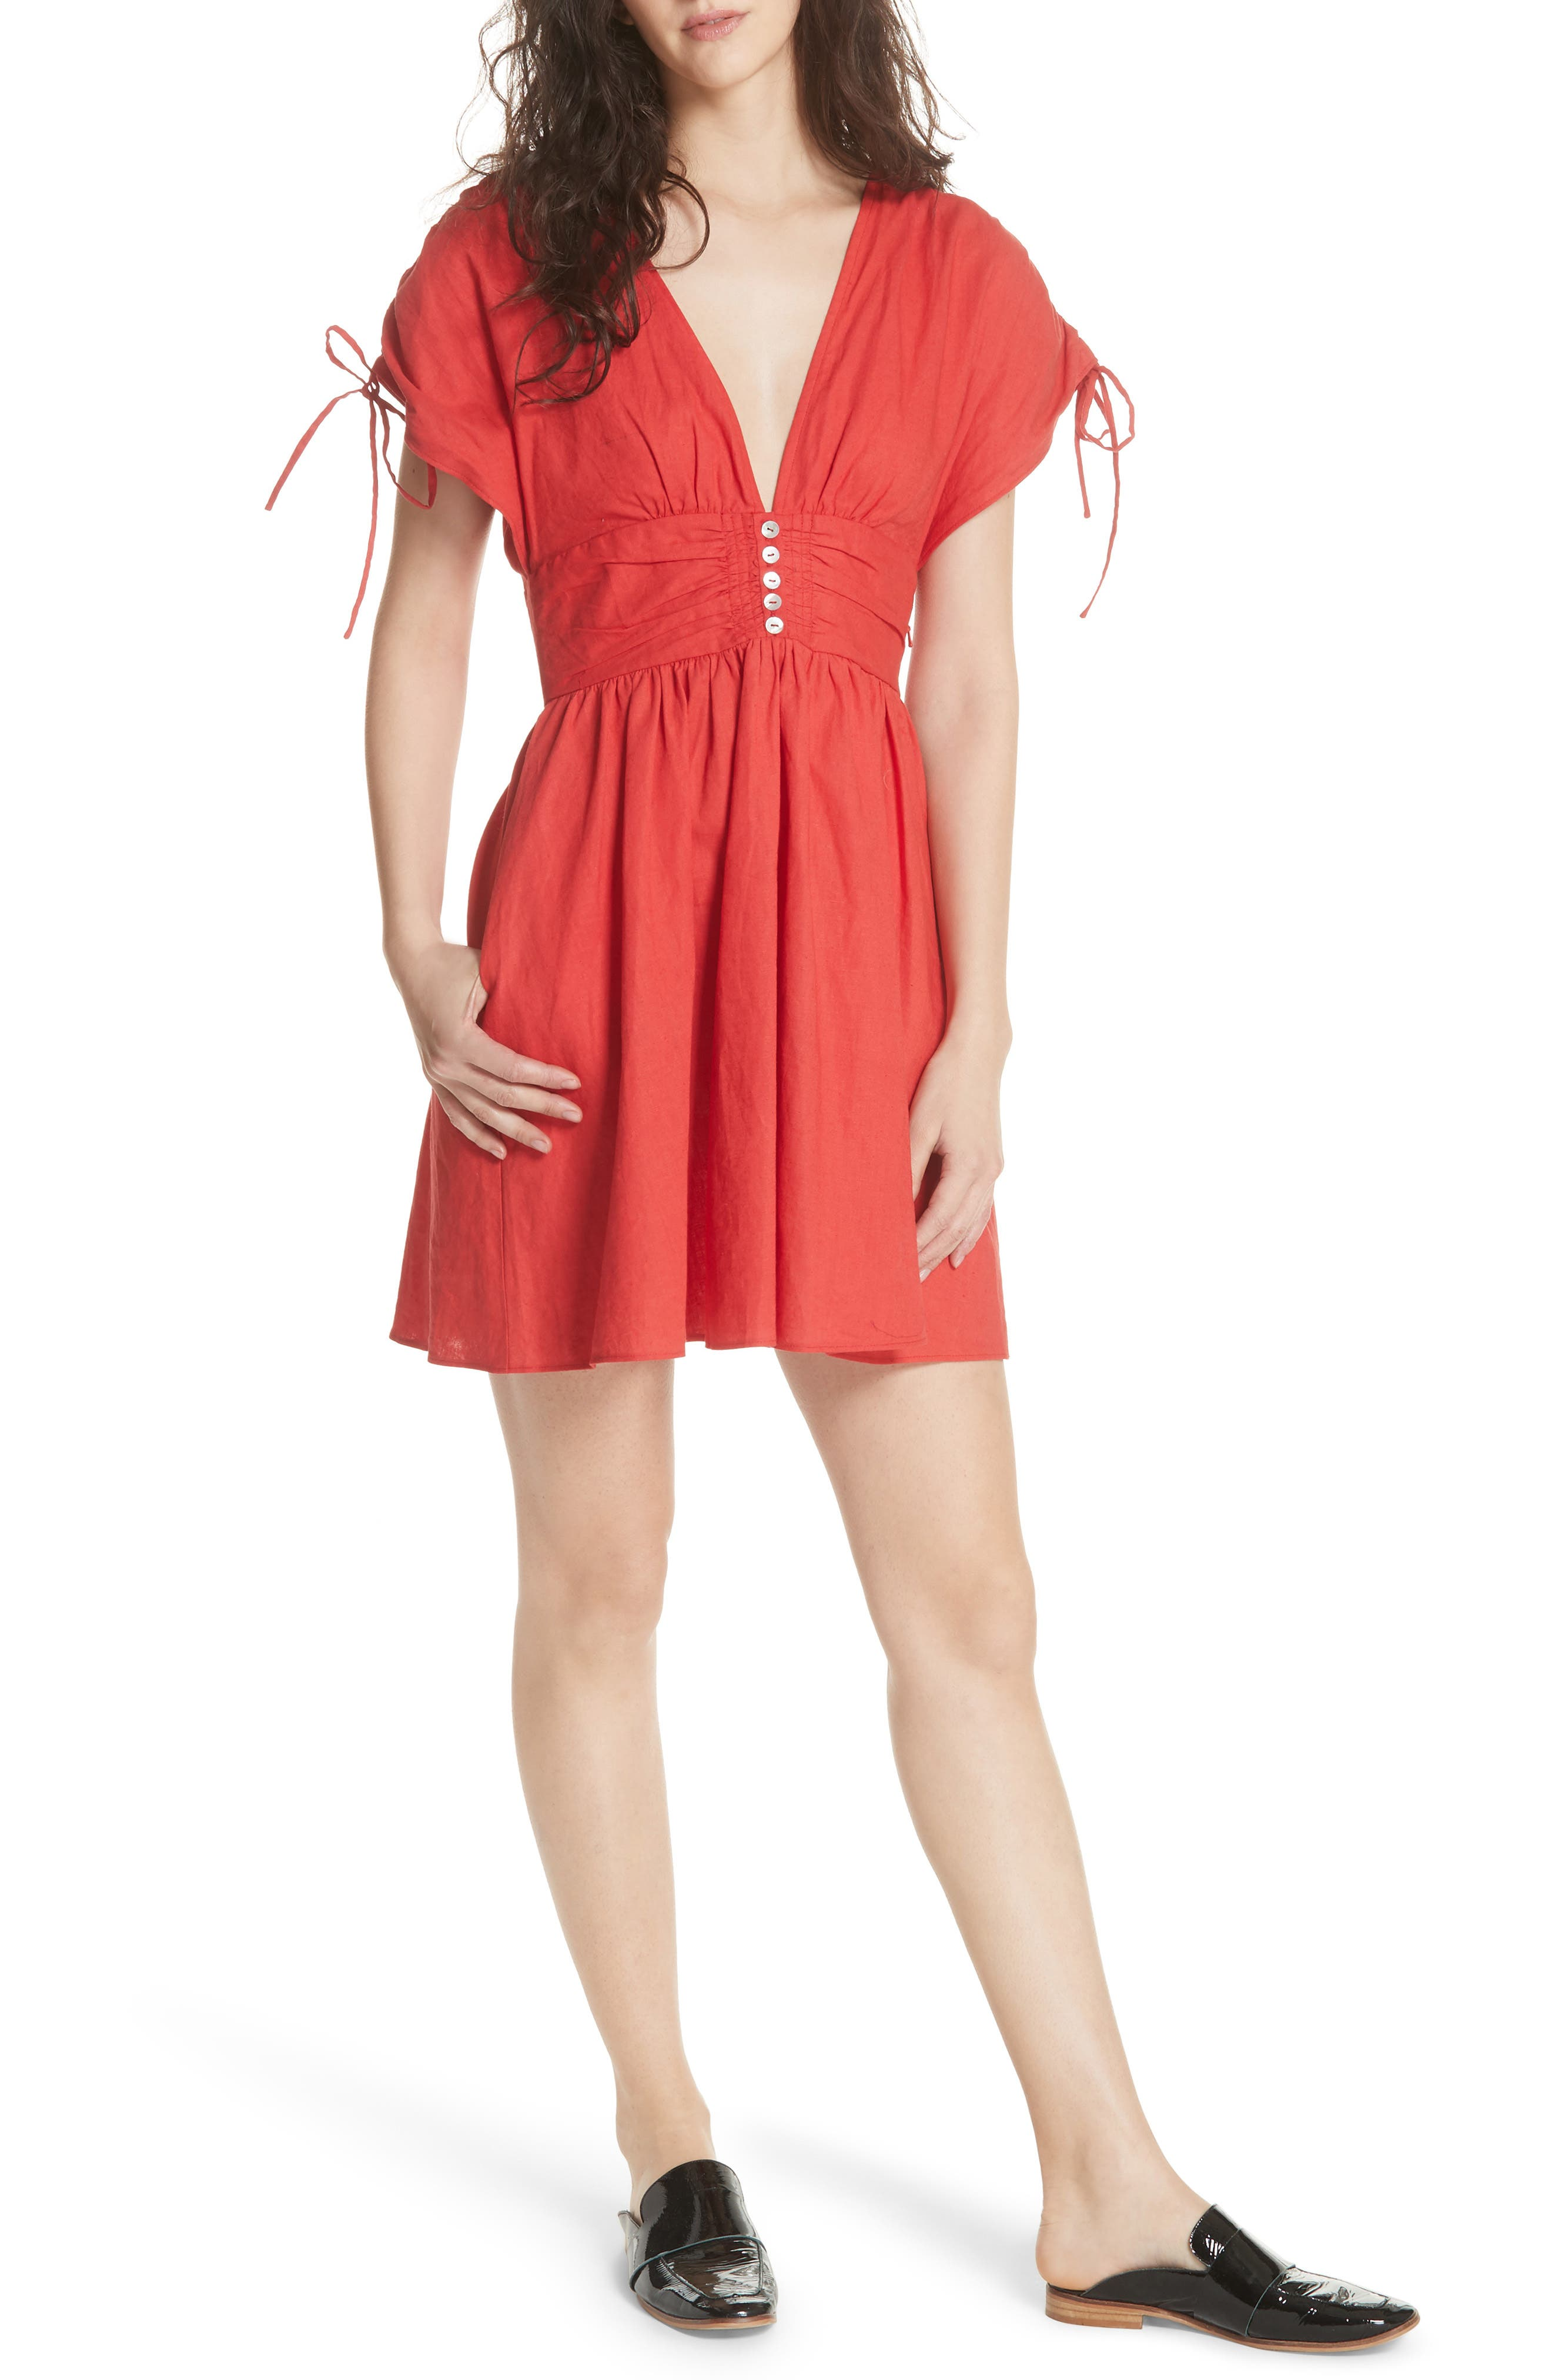 Roll the Dice Minidress,                         Main,                         color, 600